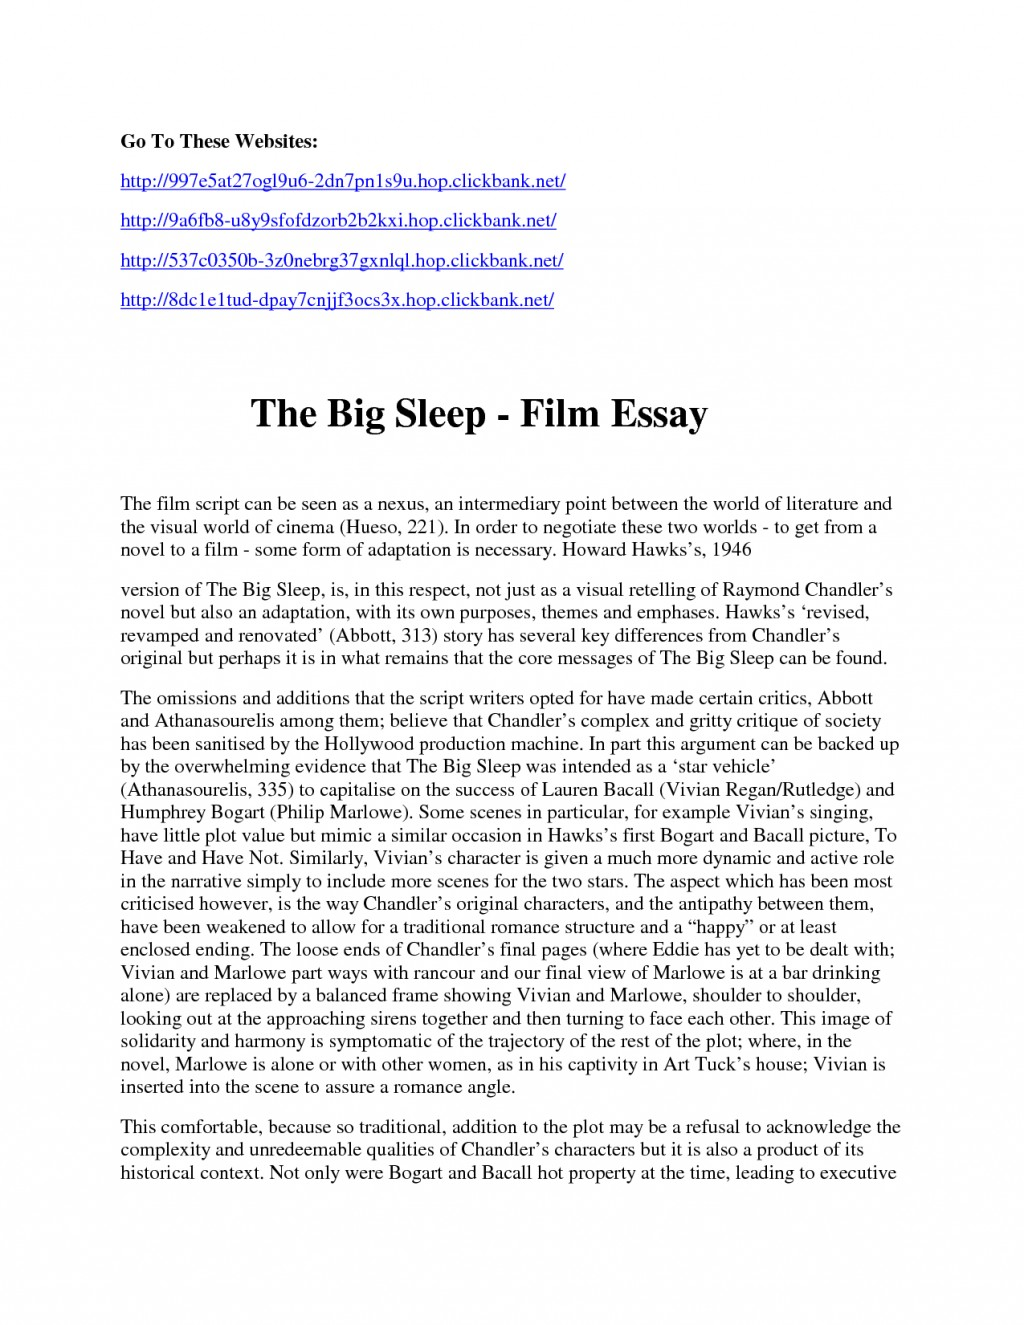 003 Example Movie Review Essays 130056 Essay Frightening Film Festival Harry Potter Large